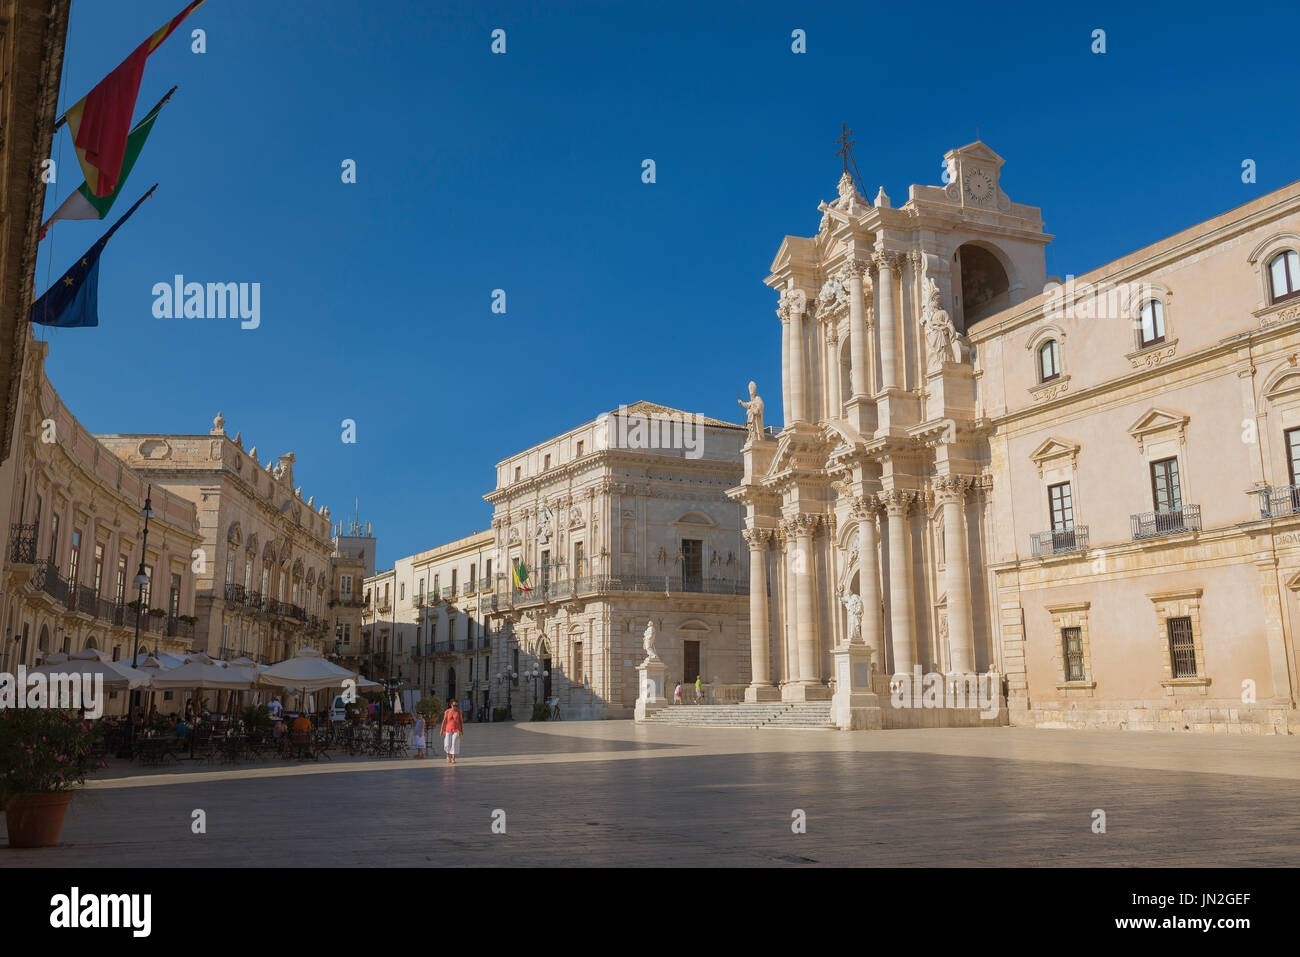 Sicily baroque architecture, the Baroque cathedral and surrounding buildings in the Piazza del Duomo on Ortygia Island, Syracuse, Sicily. - Stock Image